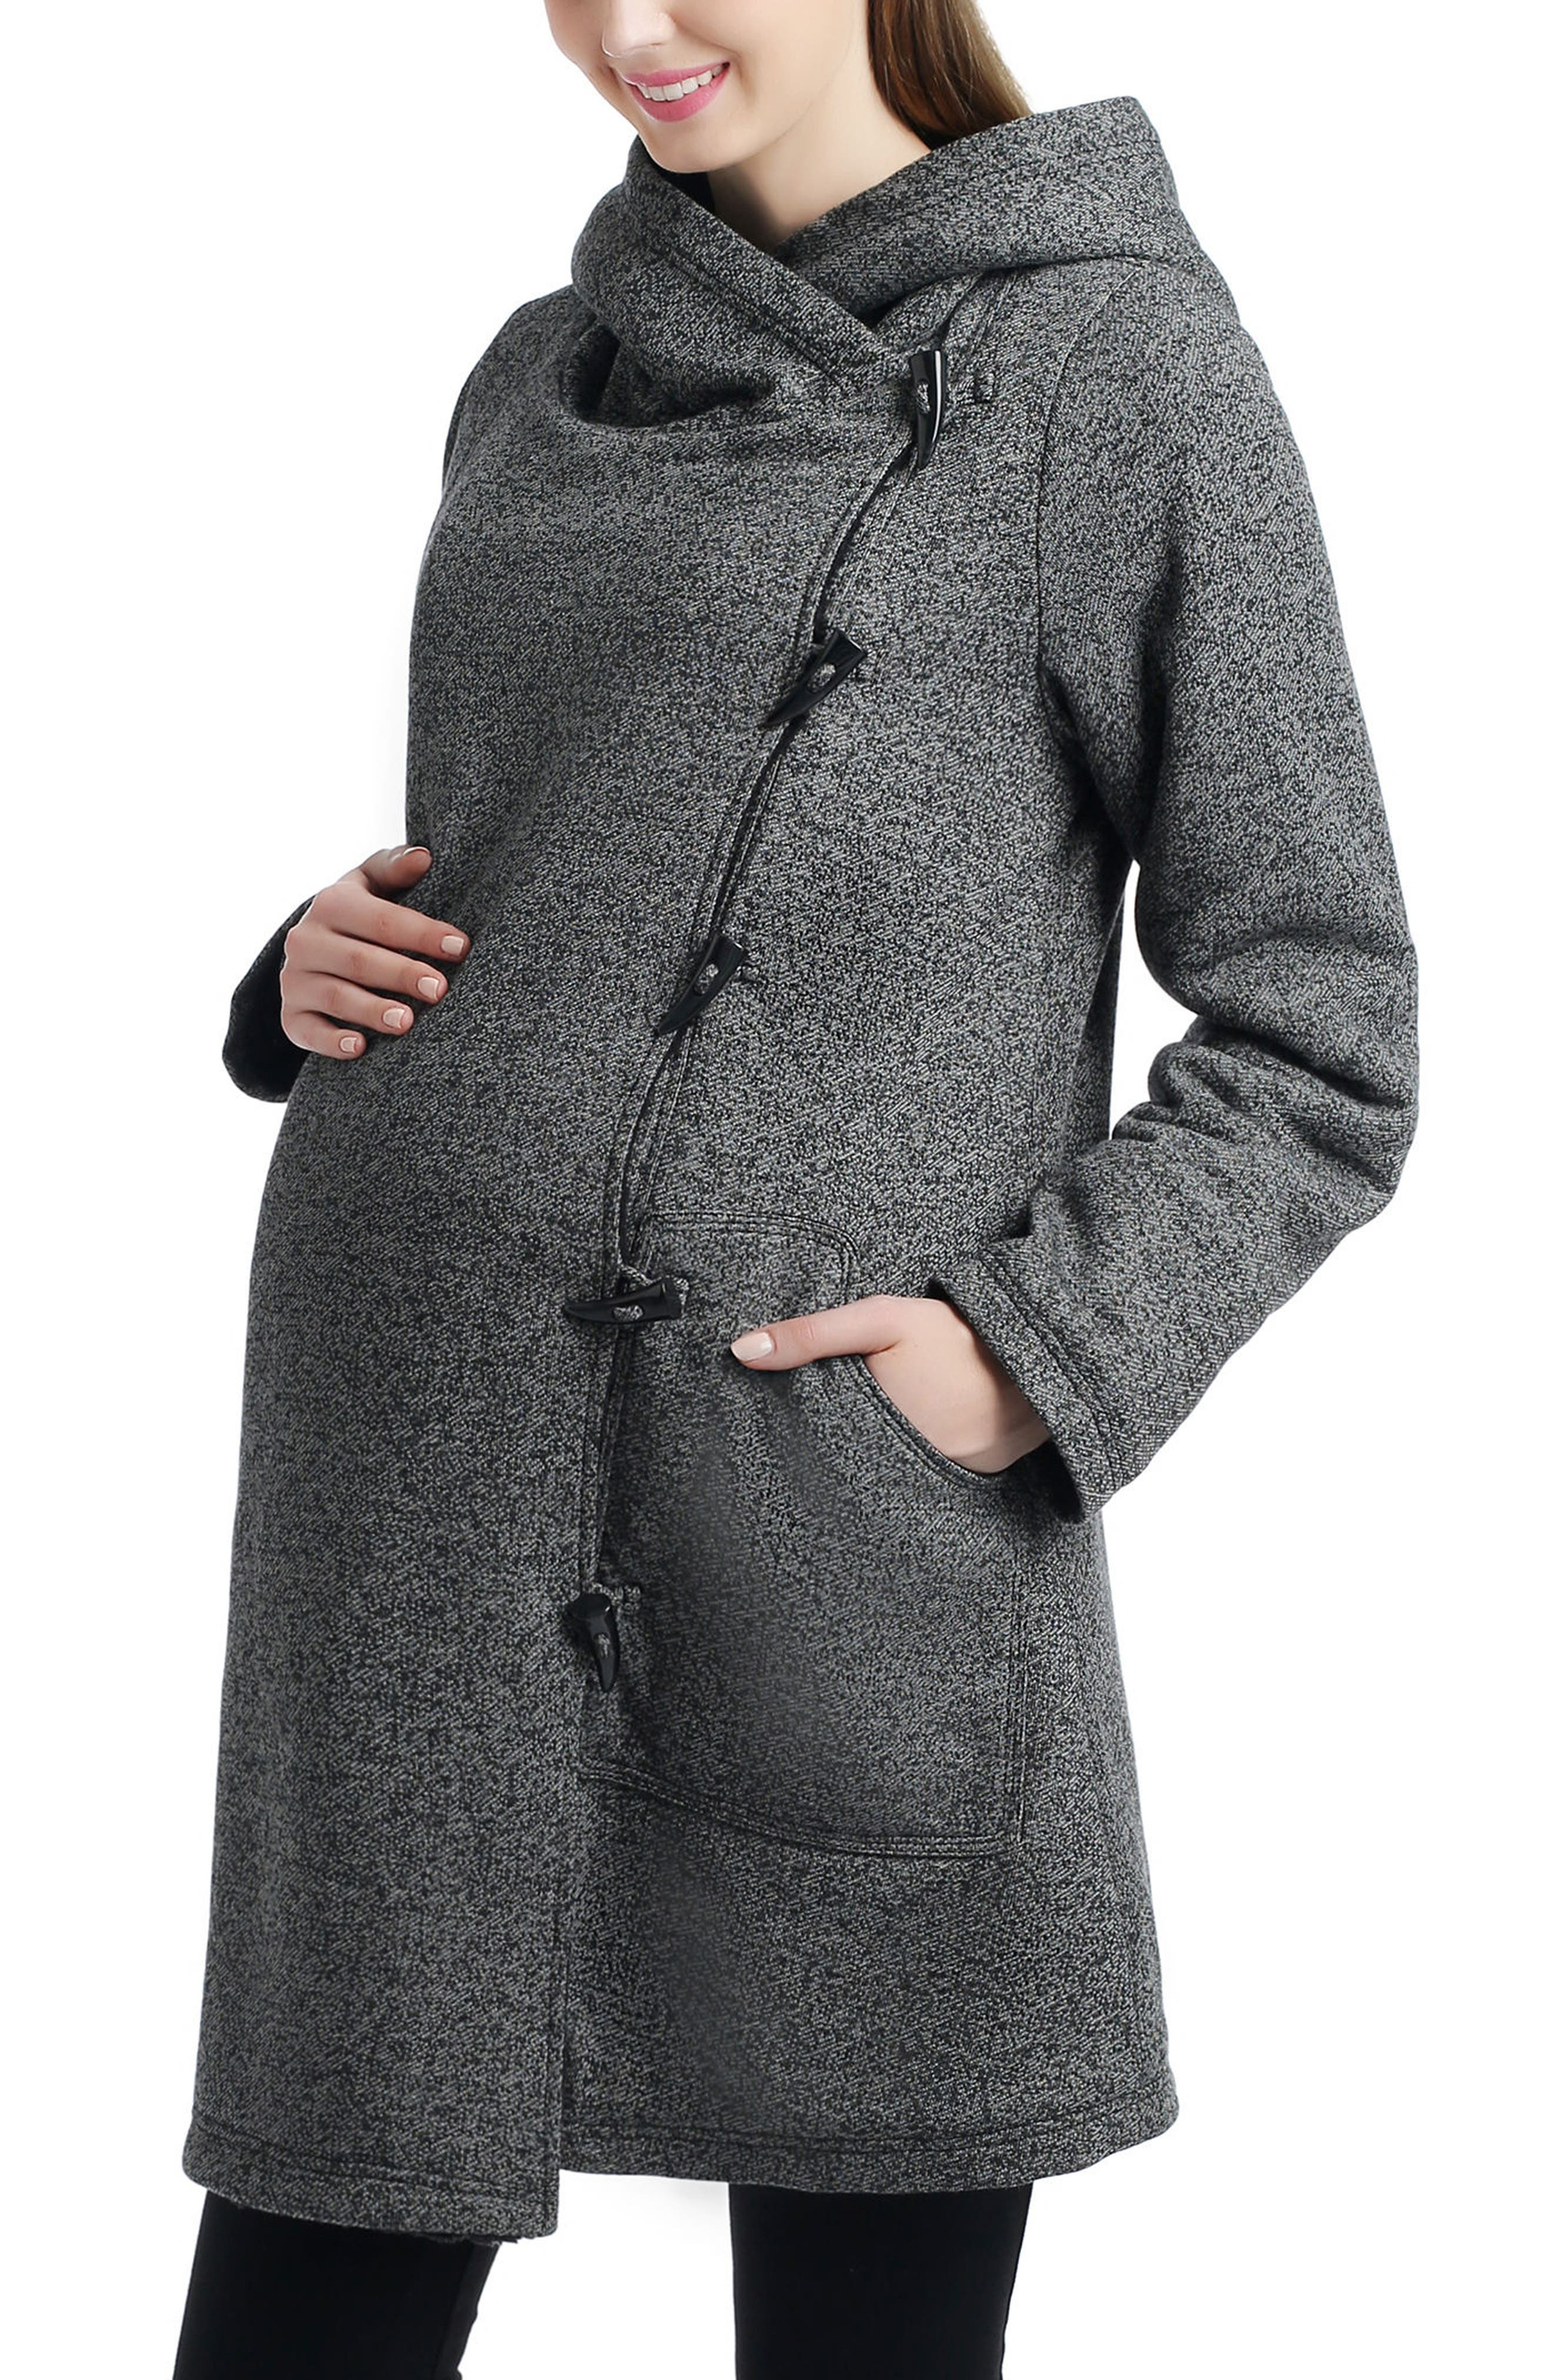 Kimi and Kai Amy Hooded Maternity Sweatshirt Jacket